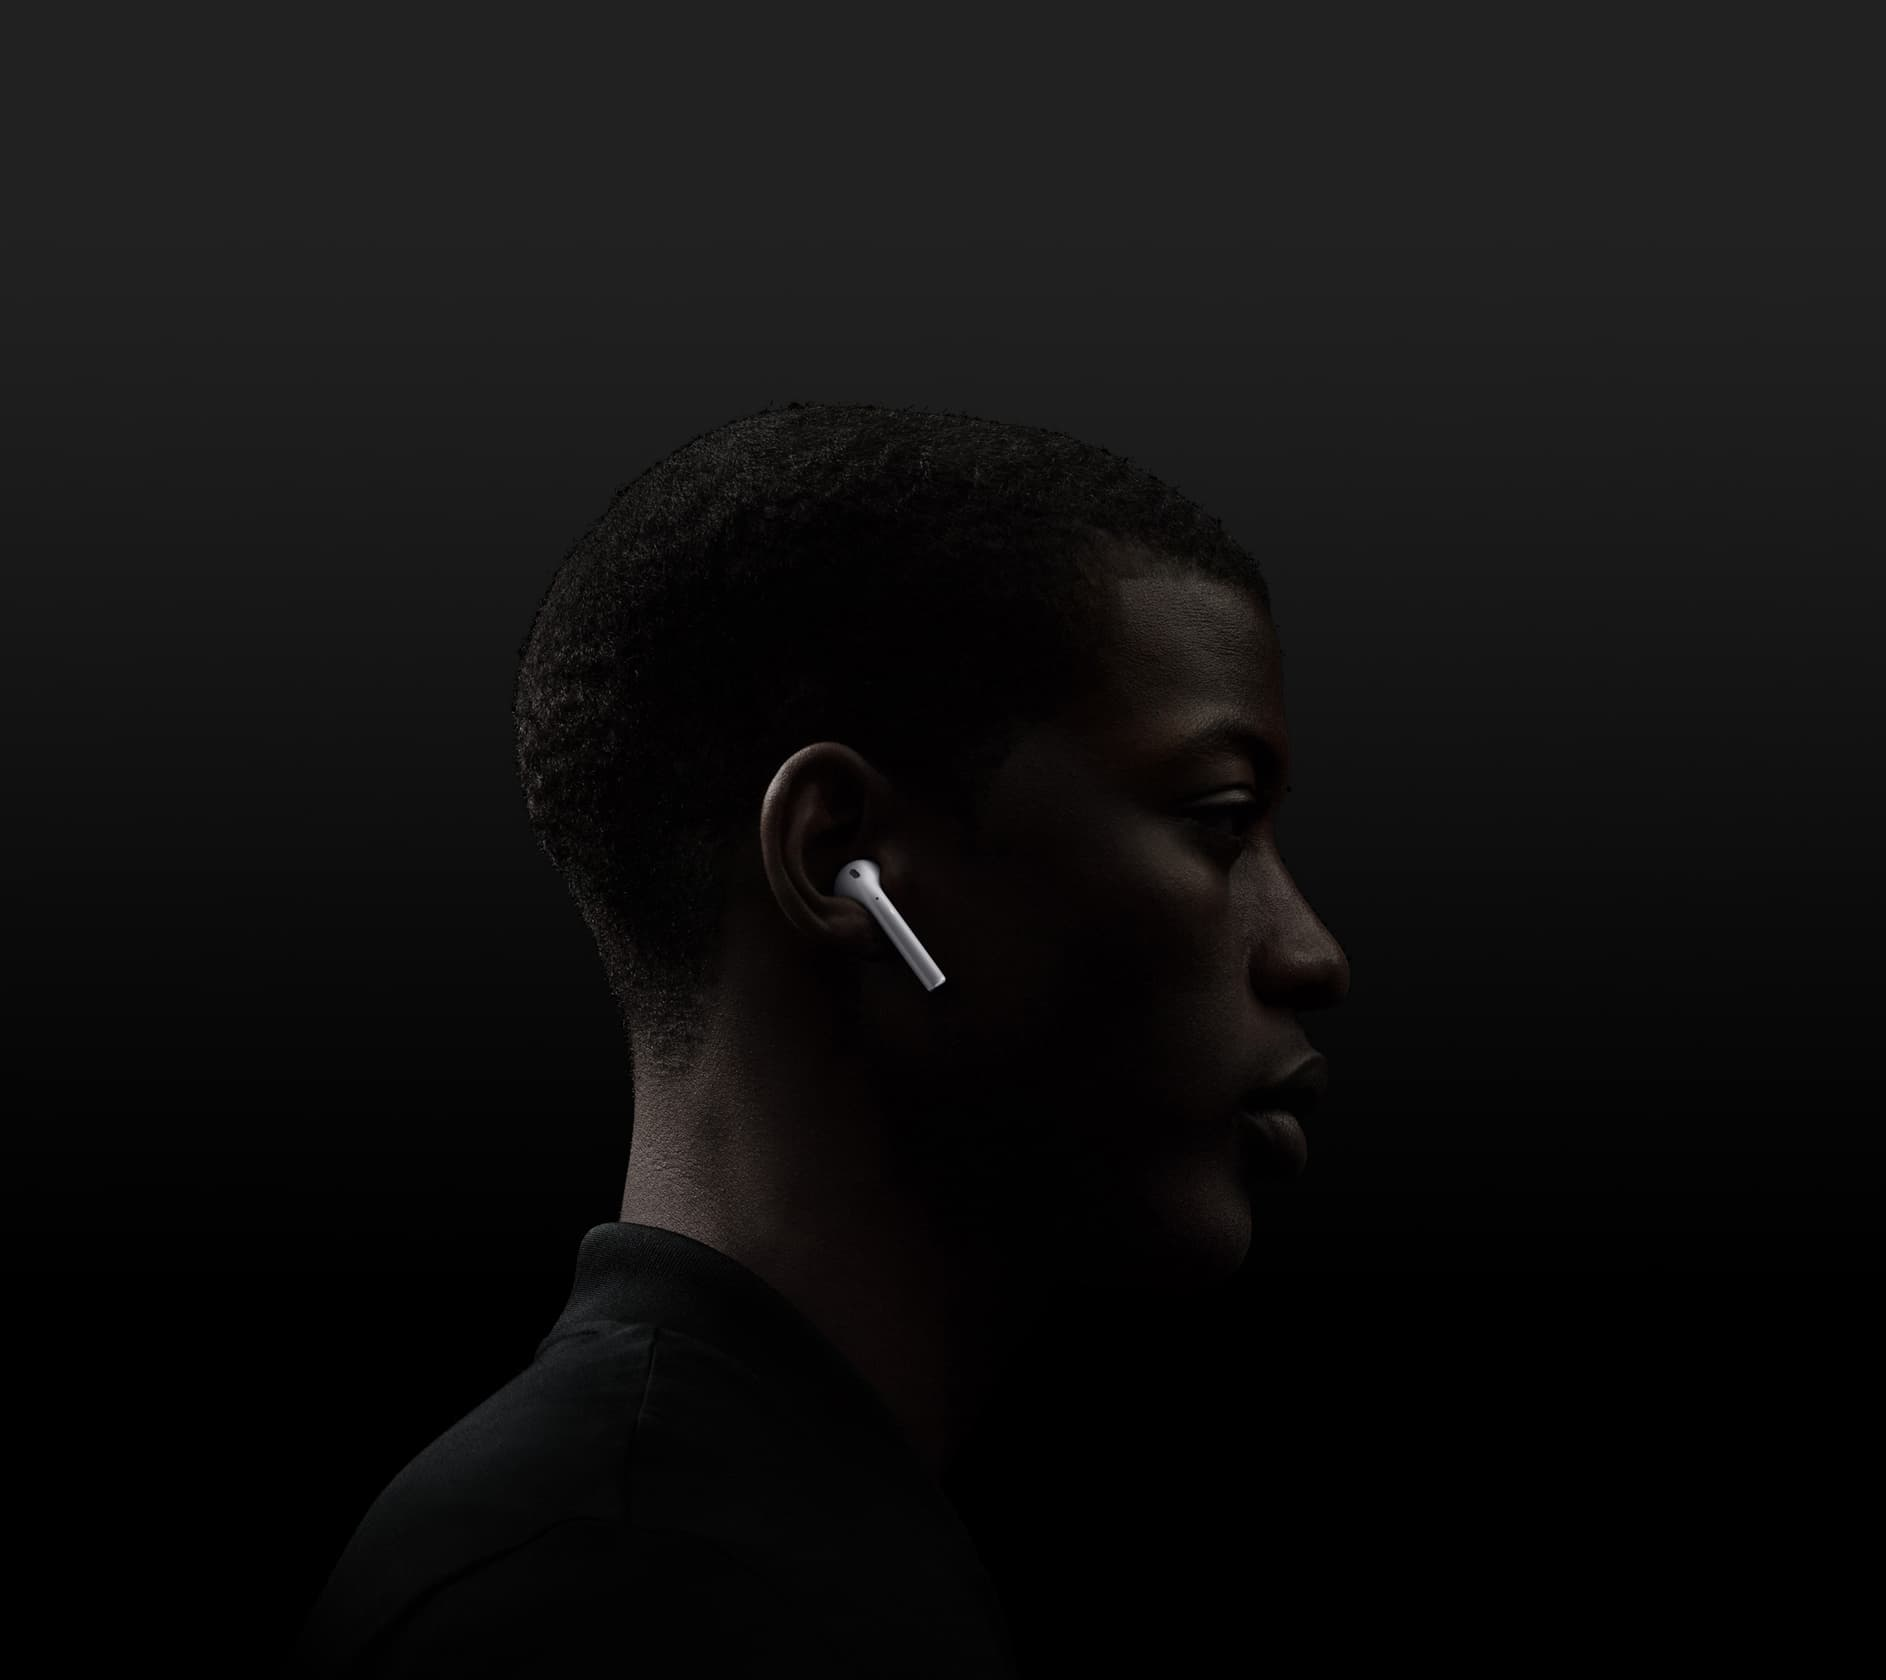 A new AirPods banner in honor of iOS 13